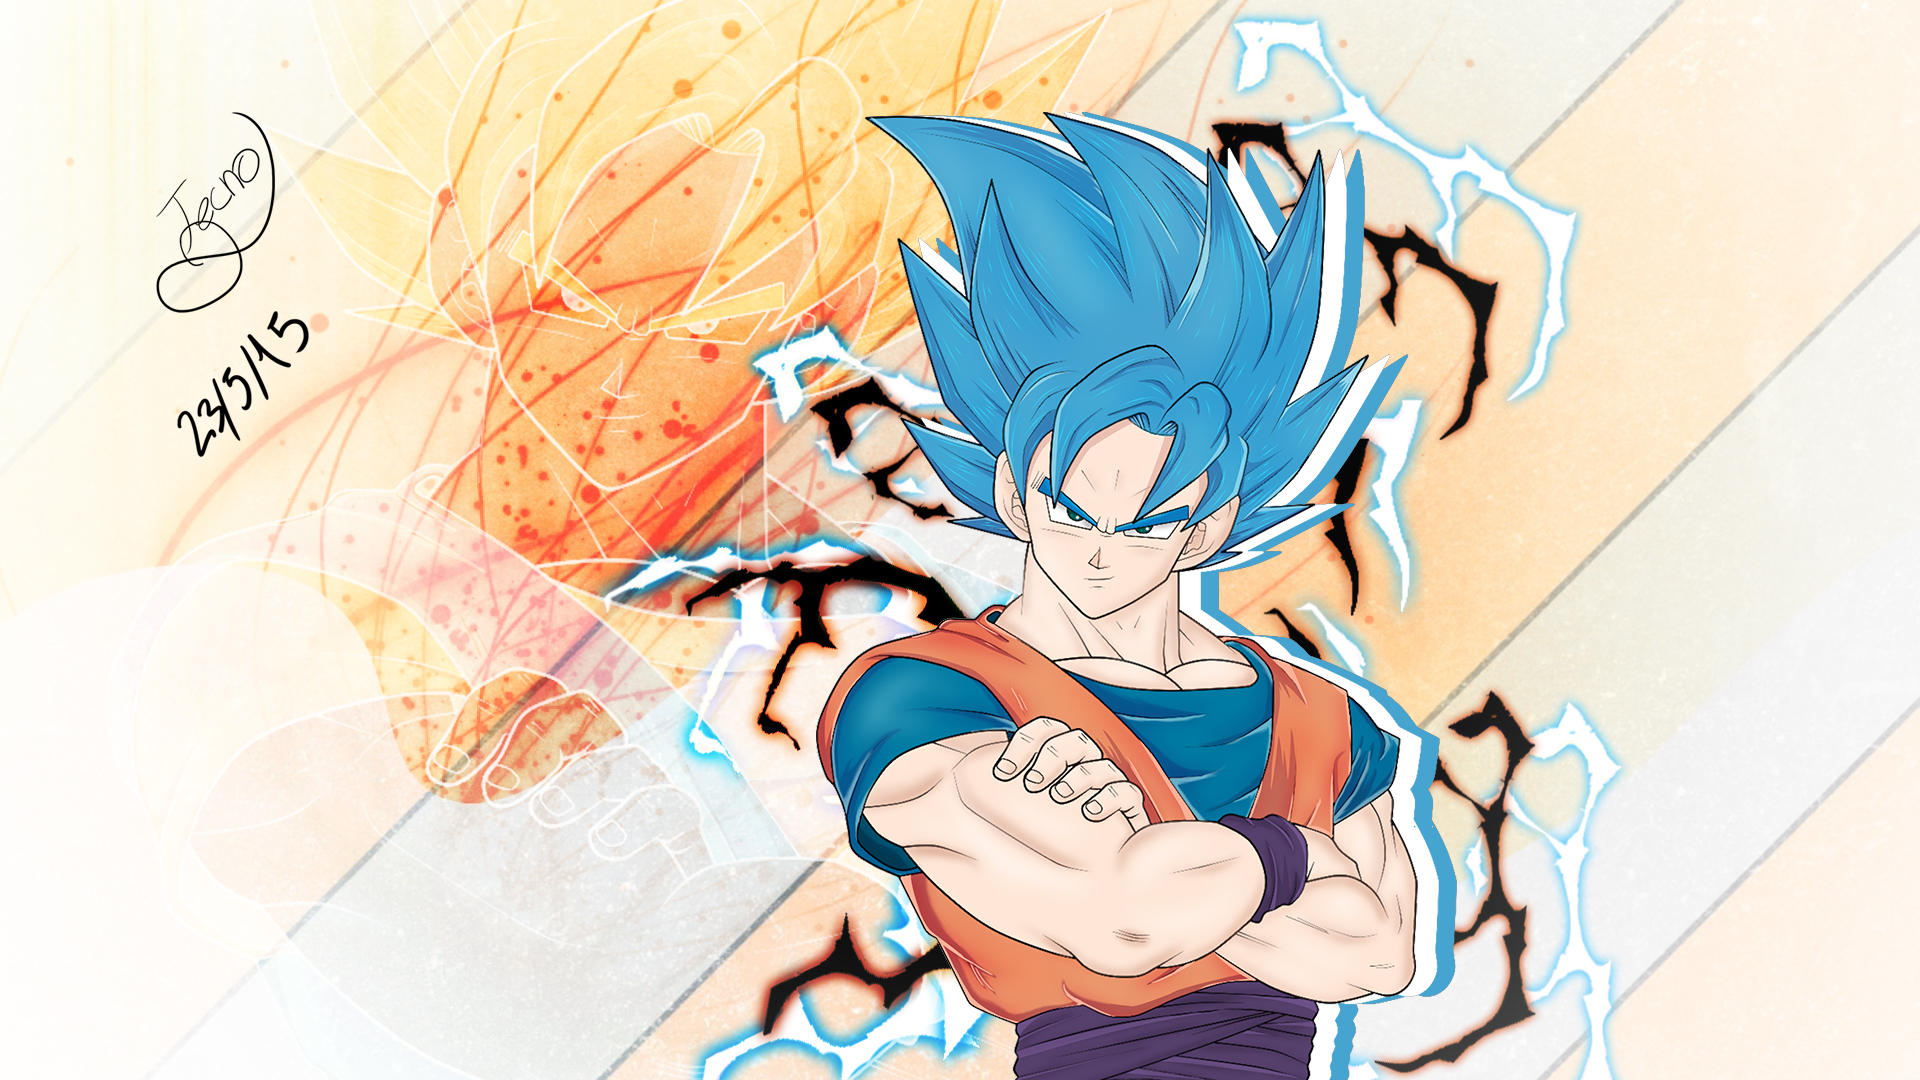 Hd wallpaper vegeta - Goku Super Sayajin Dios Azul V2 Fan Art By